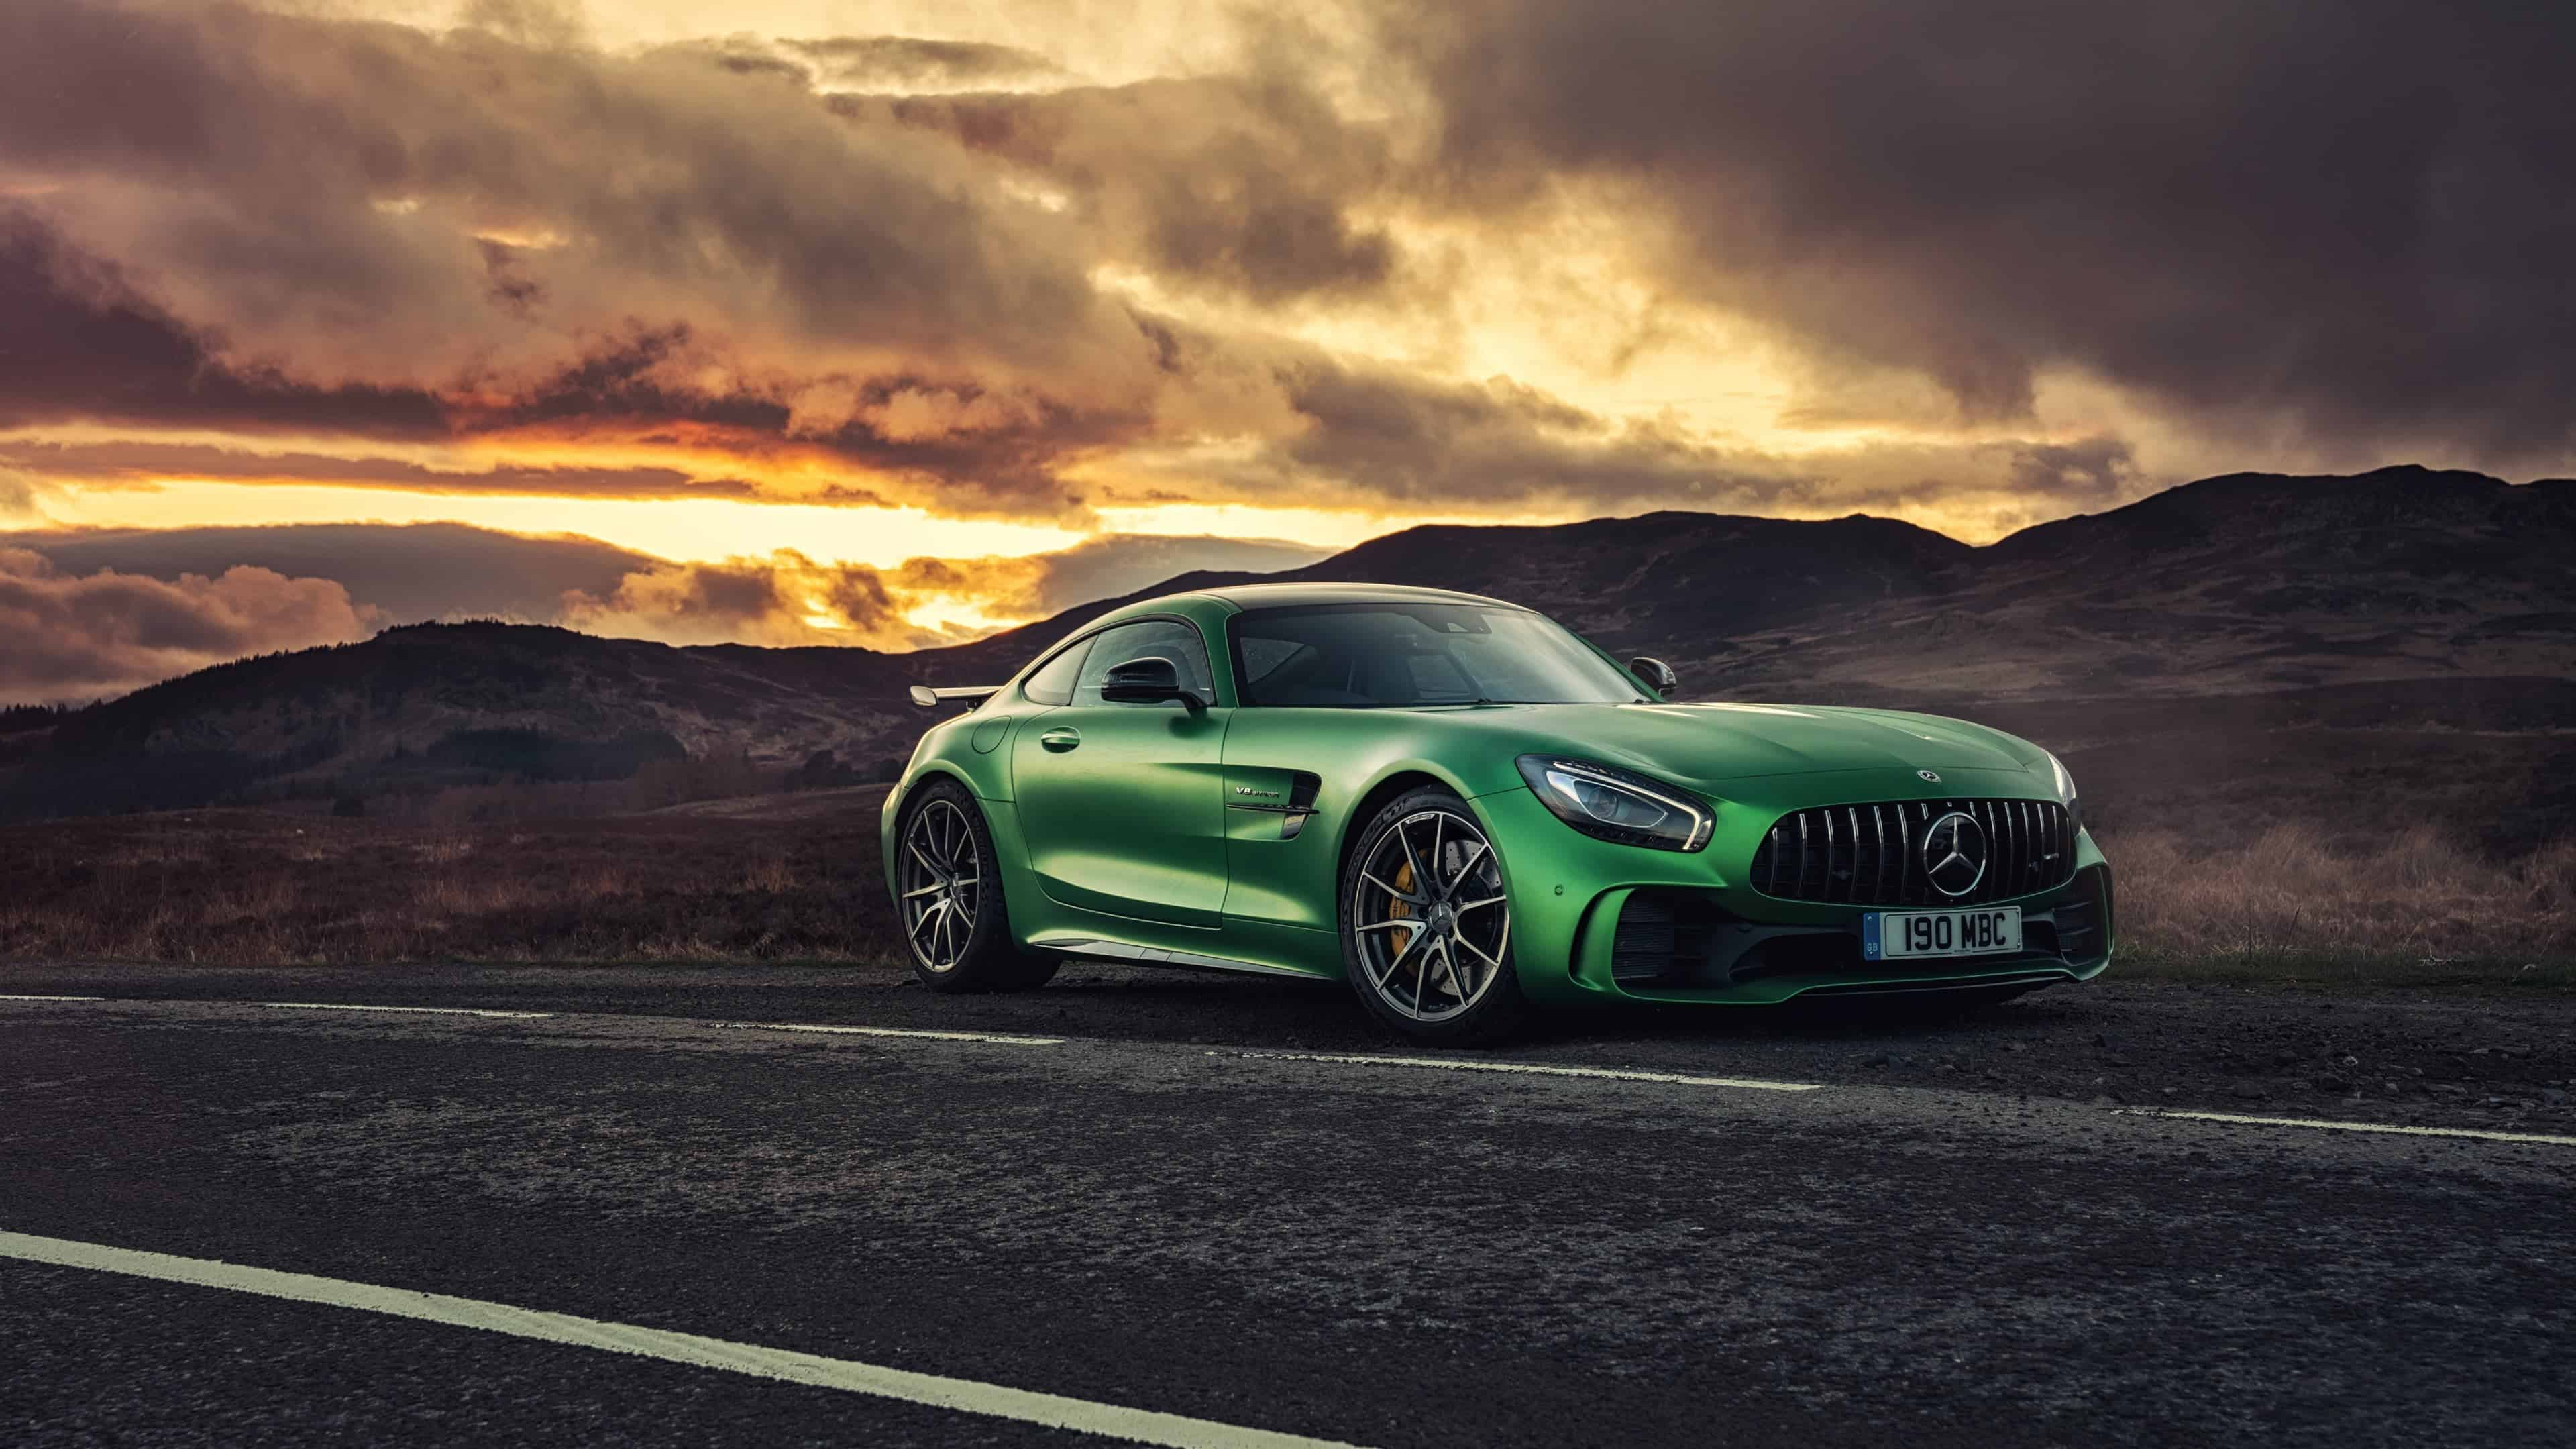 Amg Gt Wallpapers Top Free Amg Gt Backgrounds